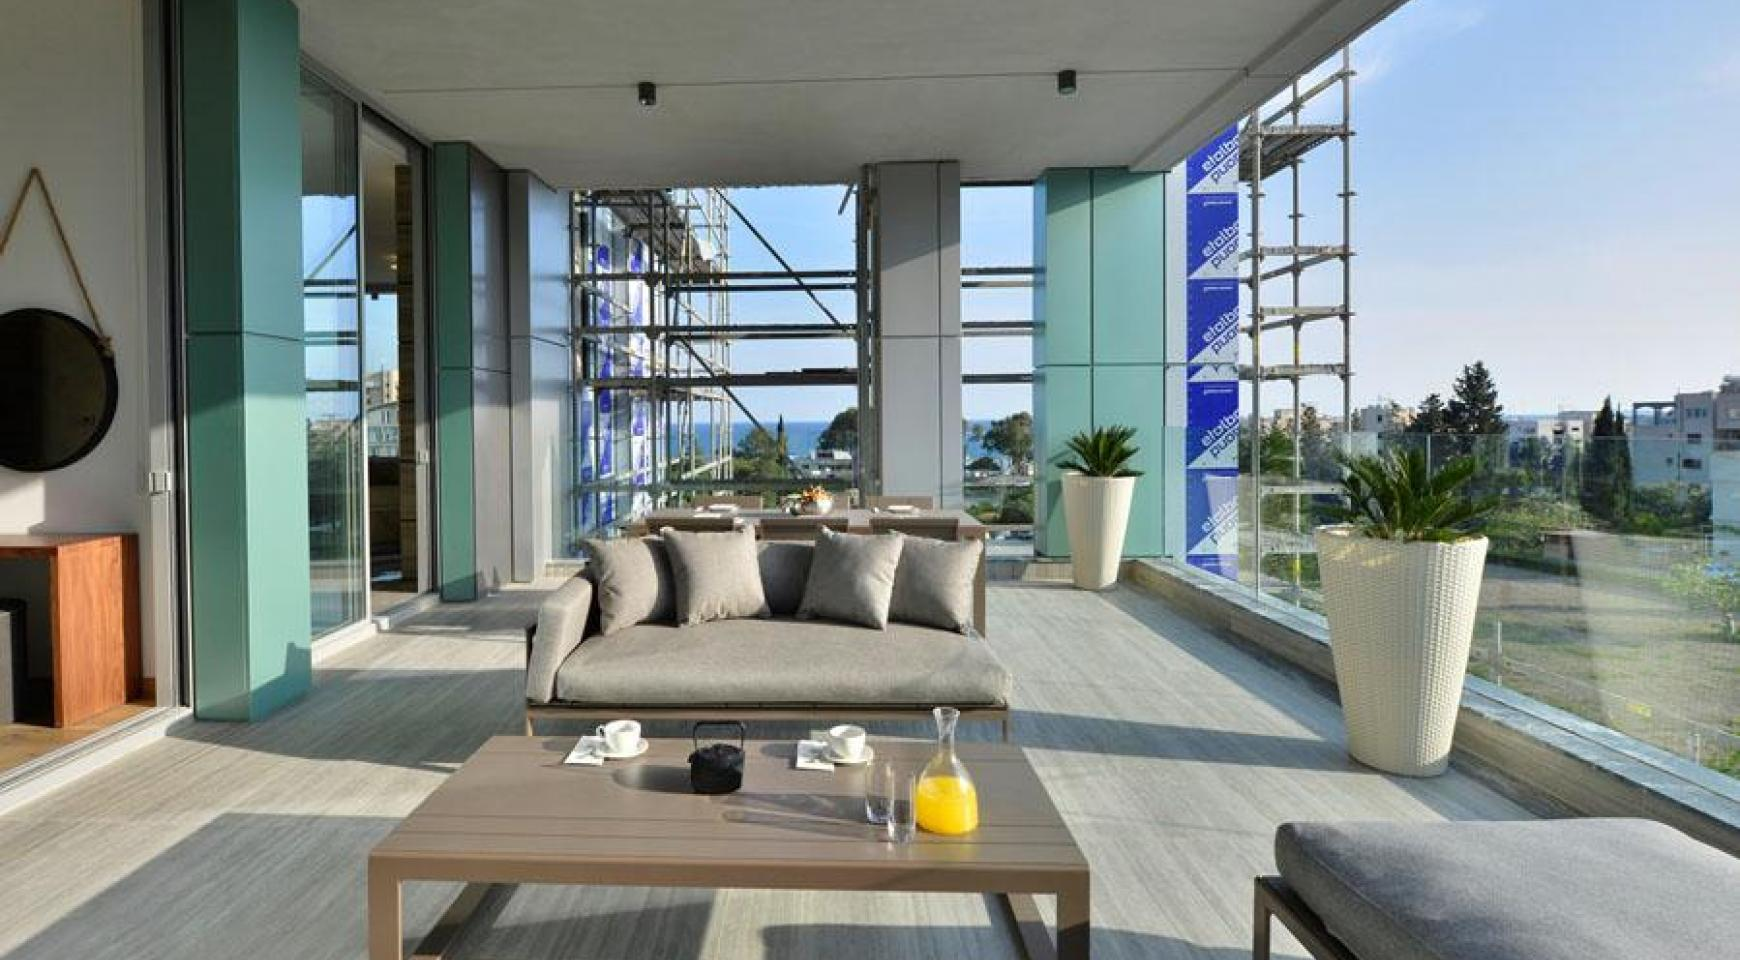 5 Bedroom Duplex Penthouse with Private Roof Garden near the Sea - 11